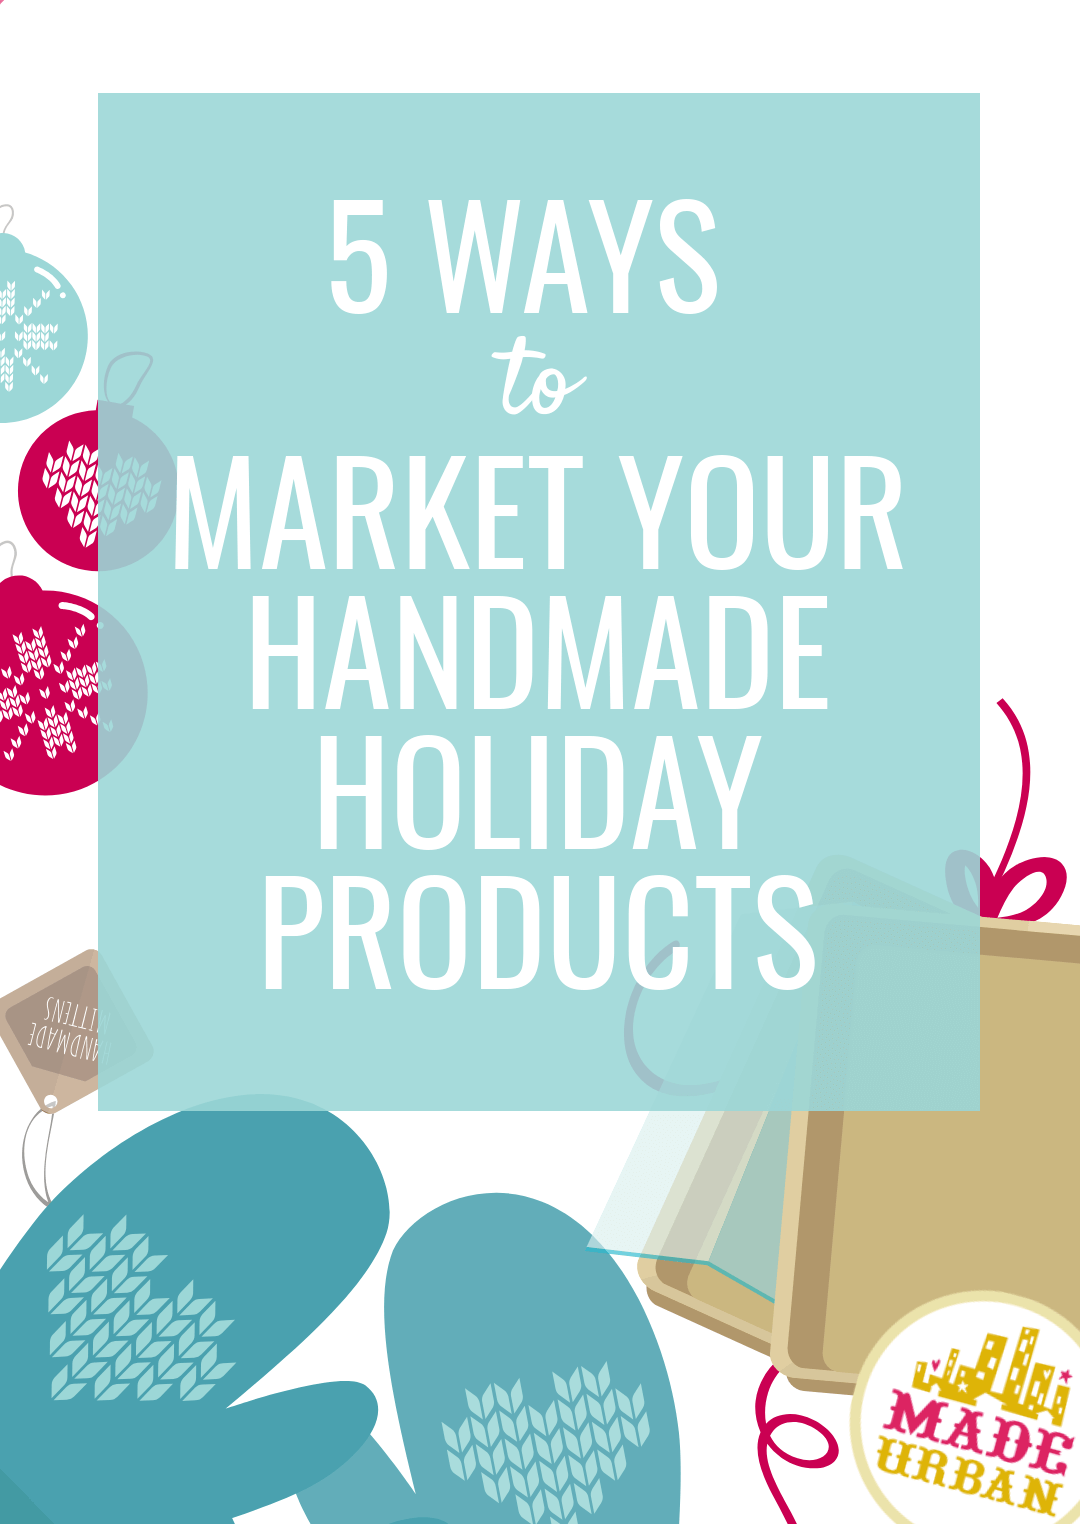 5 Ways to Market Handmade Holiday Products